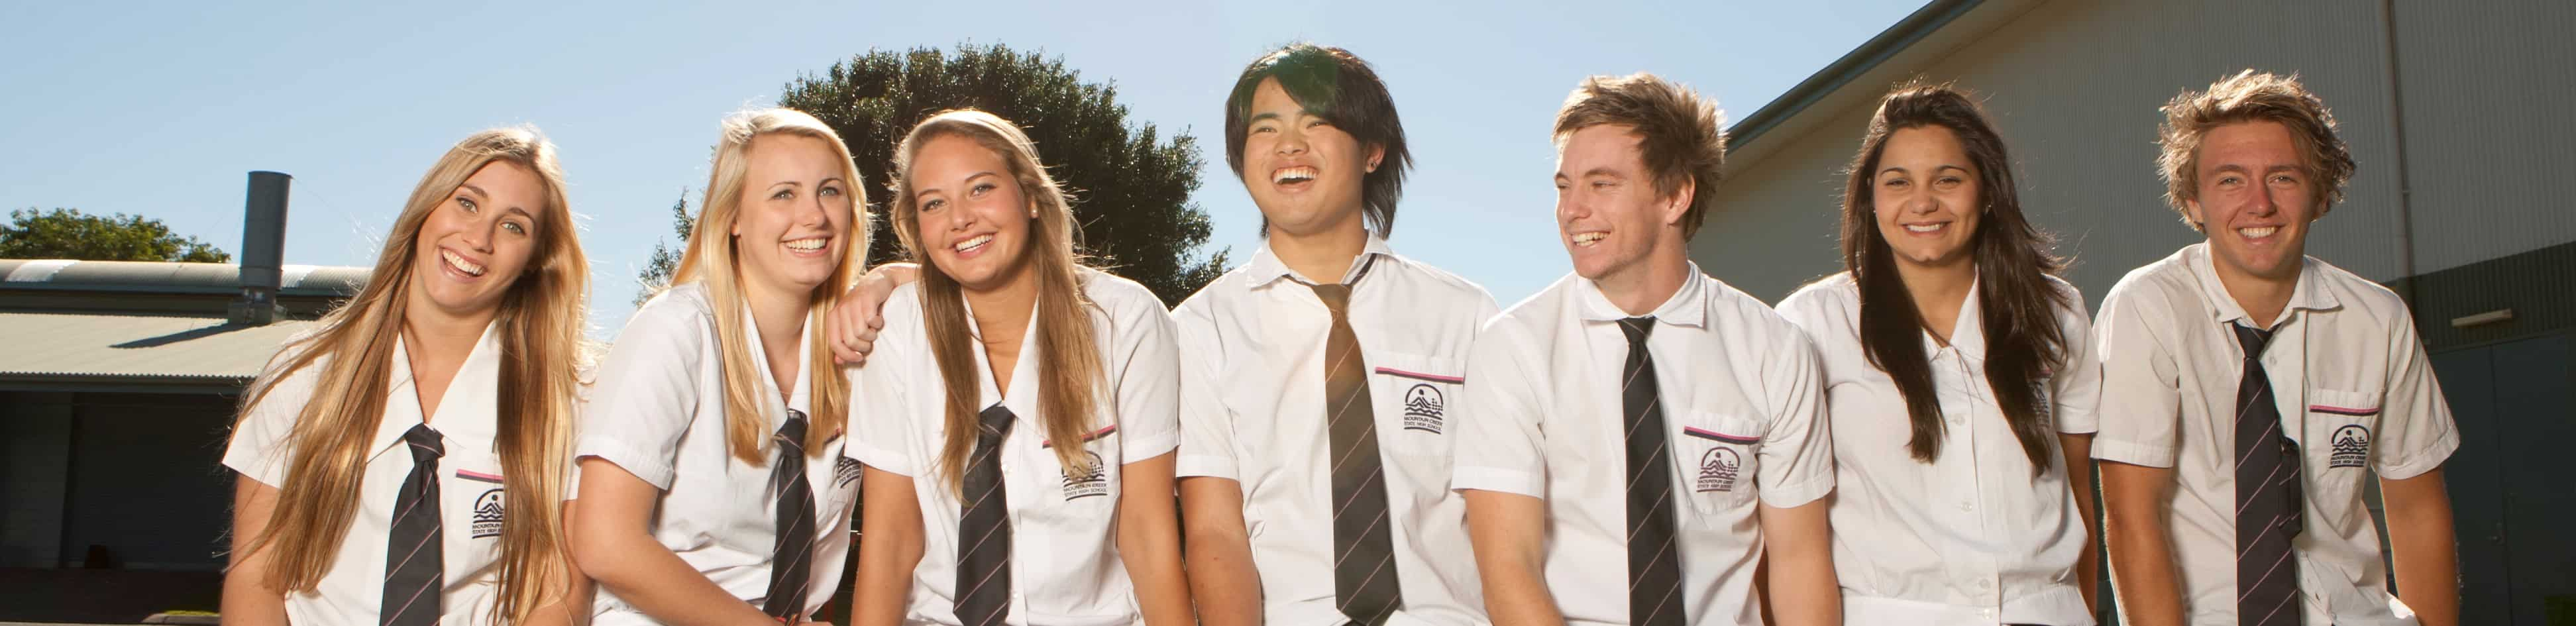 High School Exchange Australia - High School Abroad in Australia  - Study Abroad High School Australia